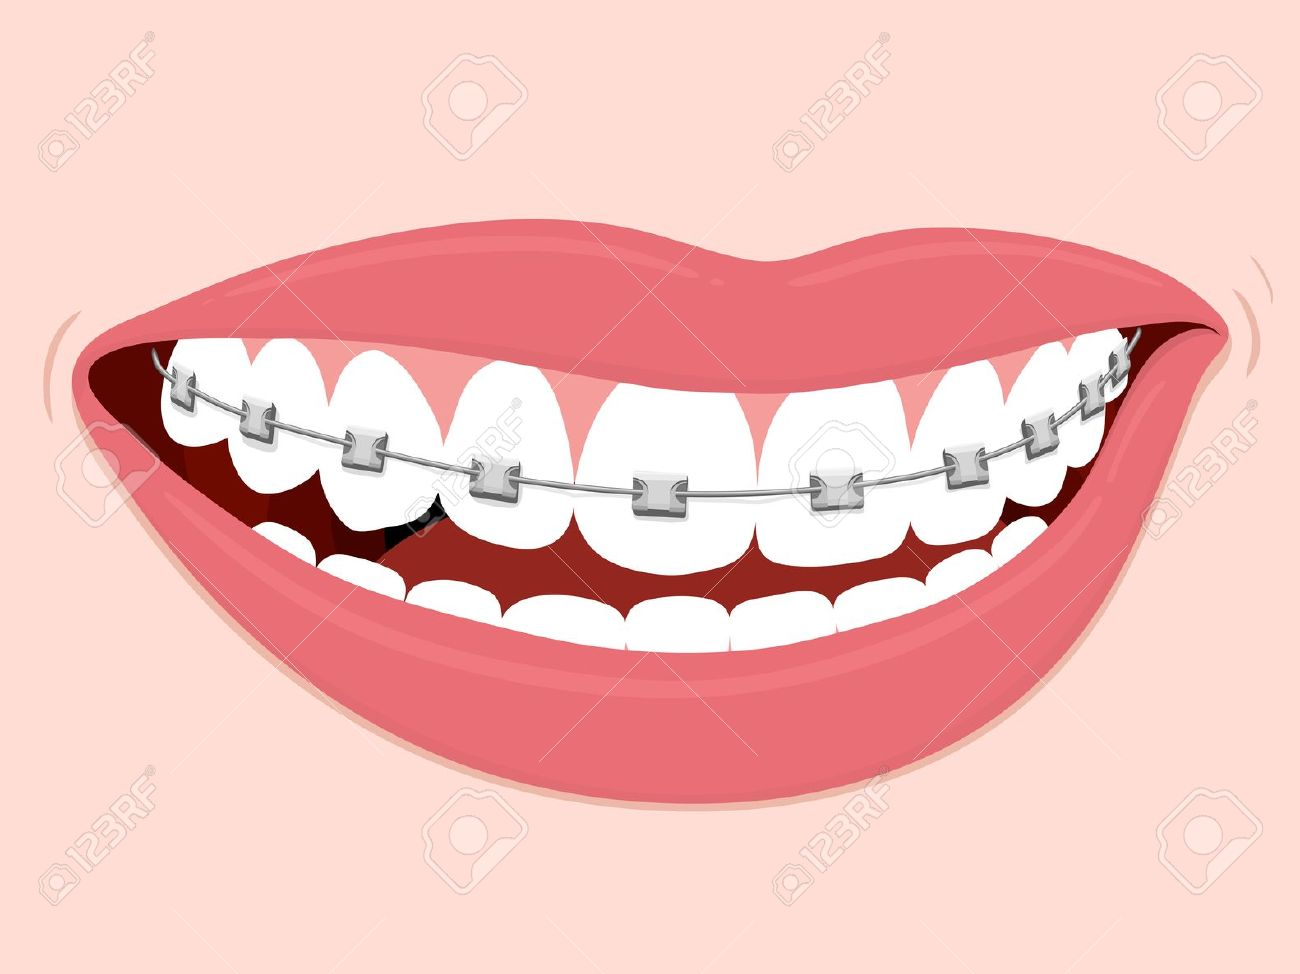 Clipart brace smile no background.